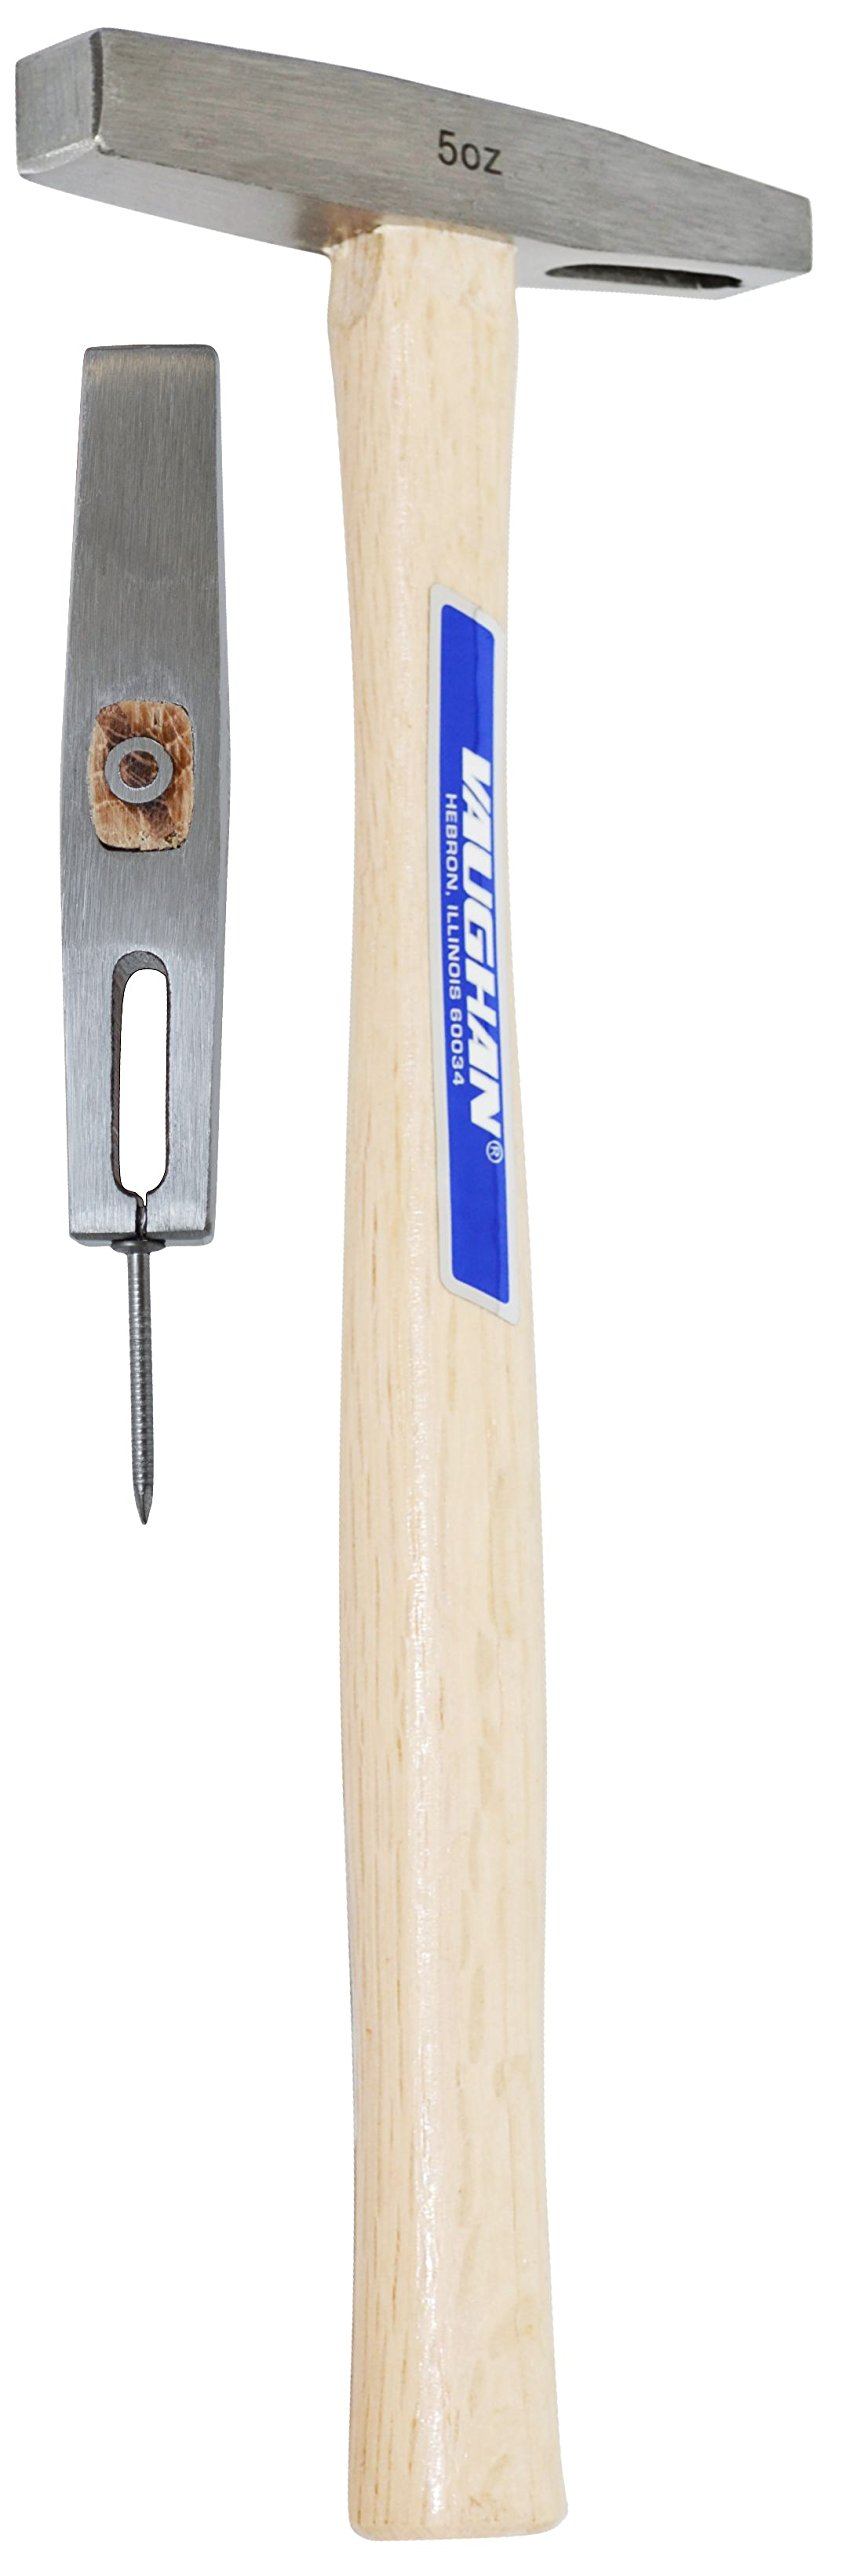 Vaughan SBP5 Professional Magnetic Tack Hammer, Hickory Handle, 11-Inch Long.